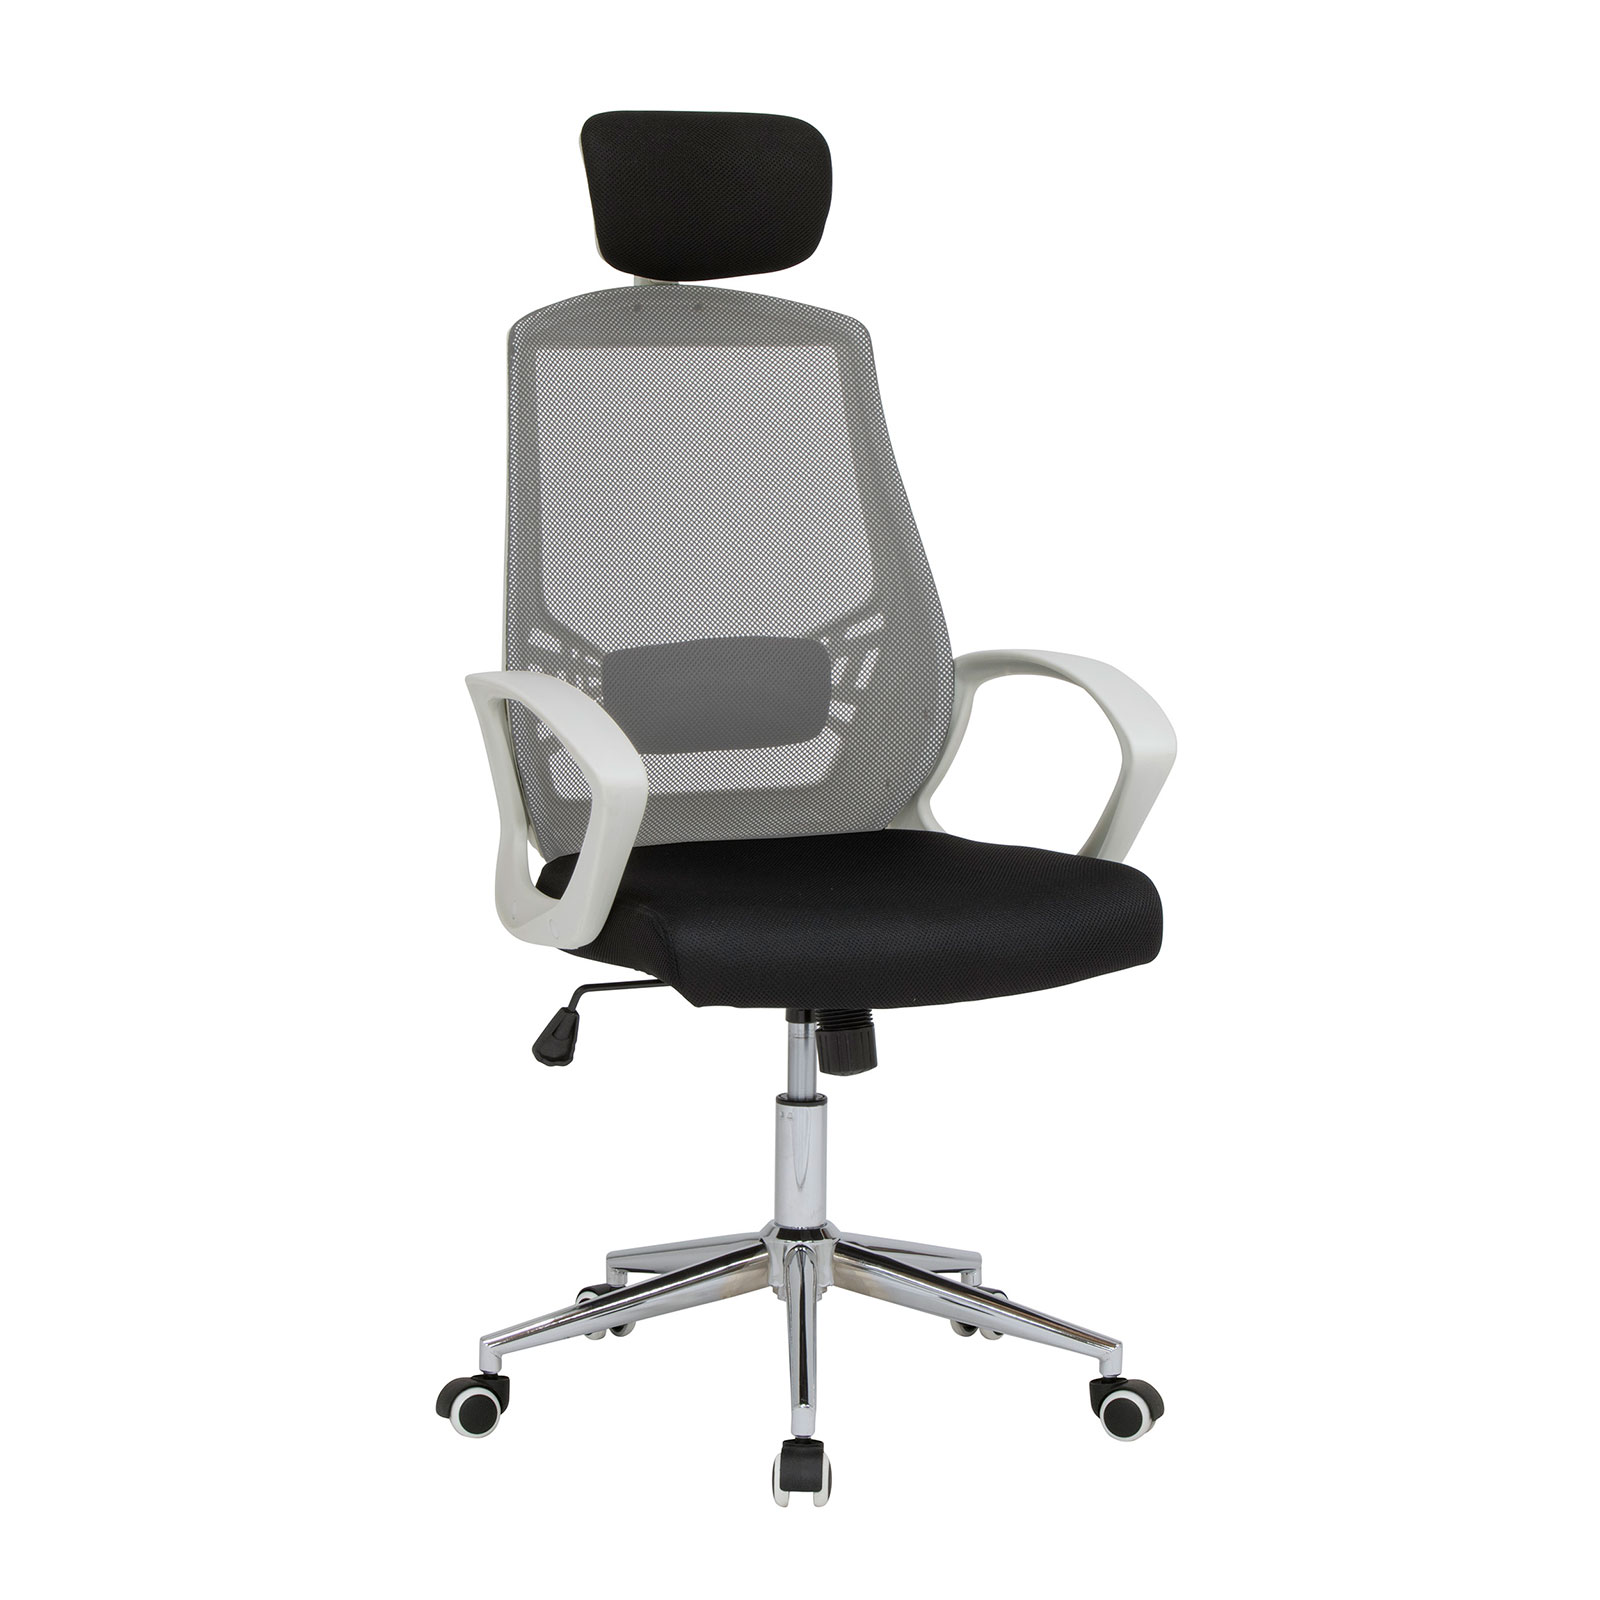 10663-High-Back-Mesh-Managers-Chair